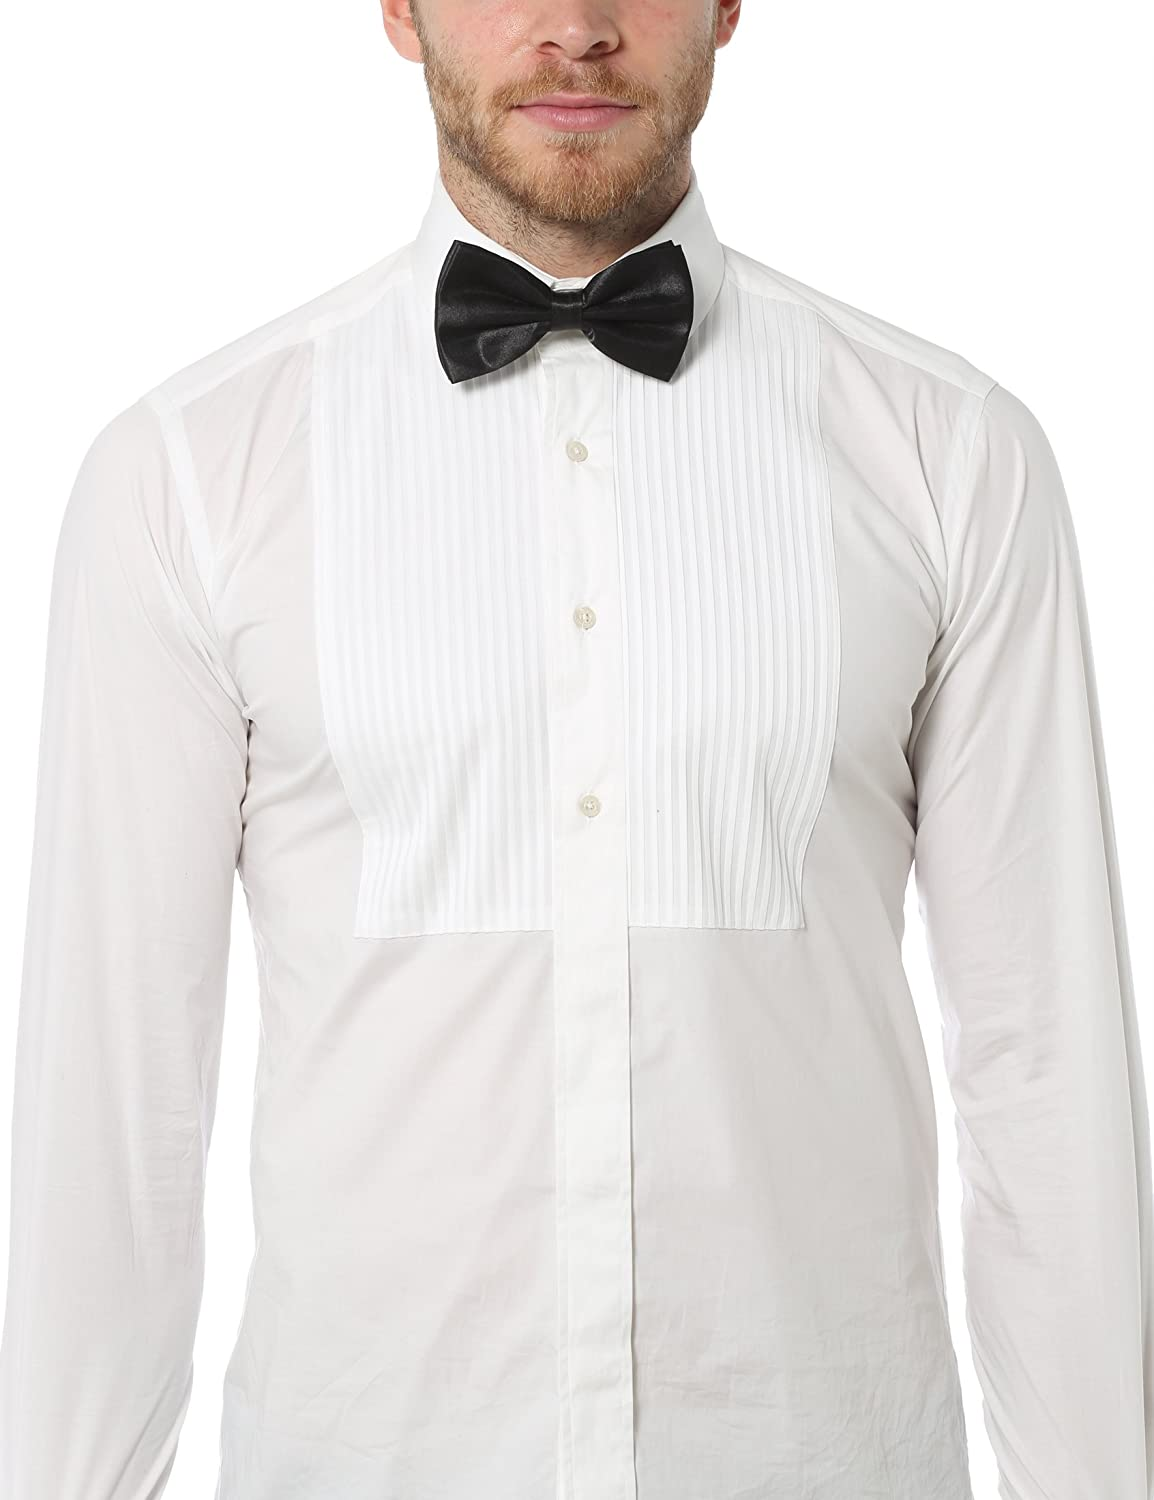 James Tyler Mens Bow Tie